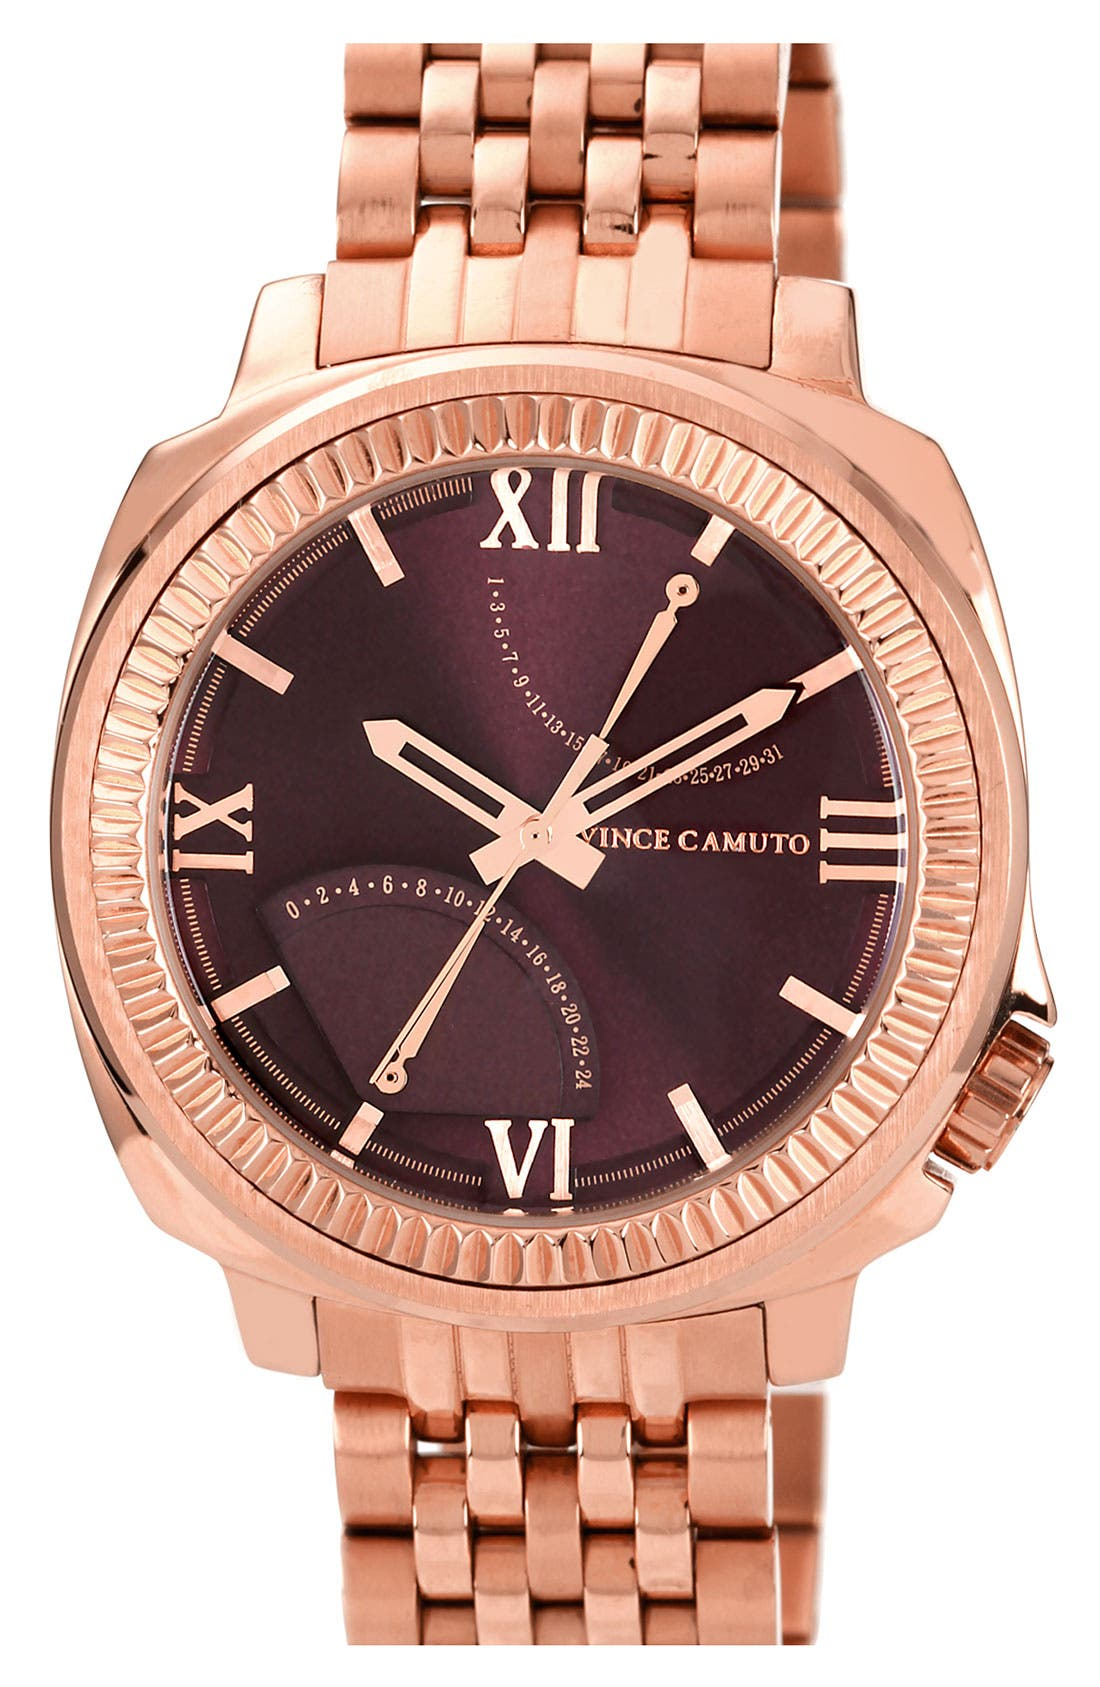 Main Image - Vince Camuto Flyback Dial Bracelet Watch, 43mm